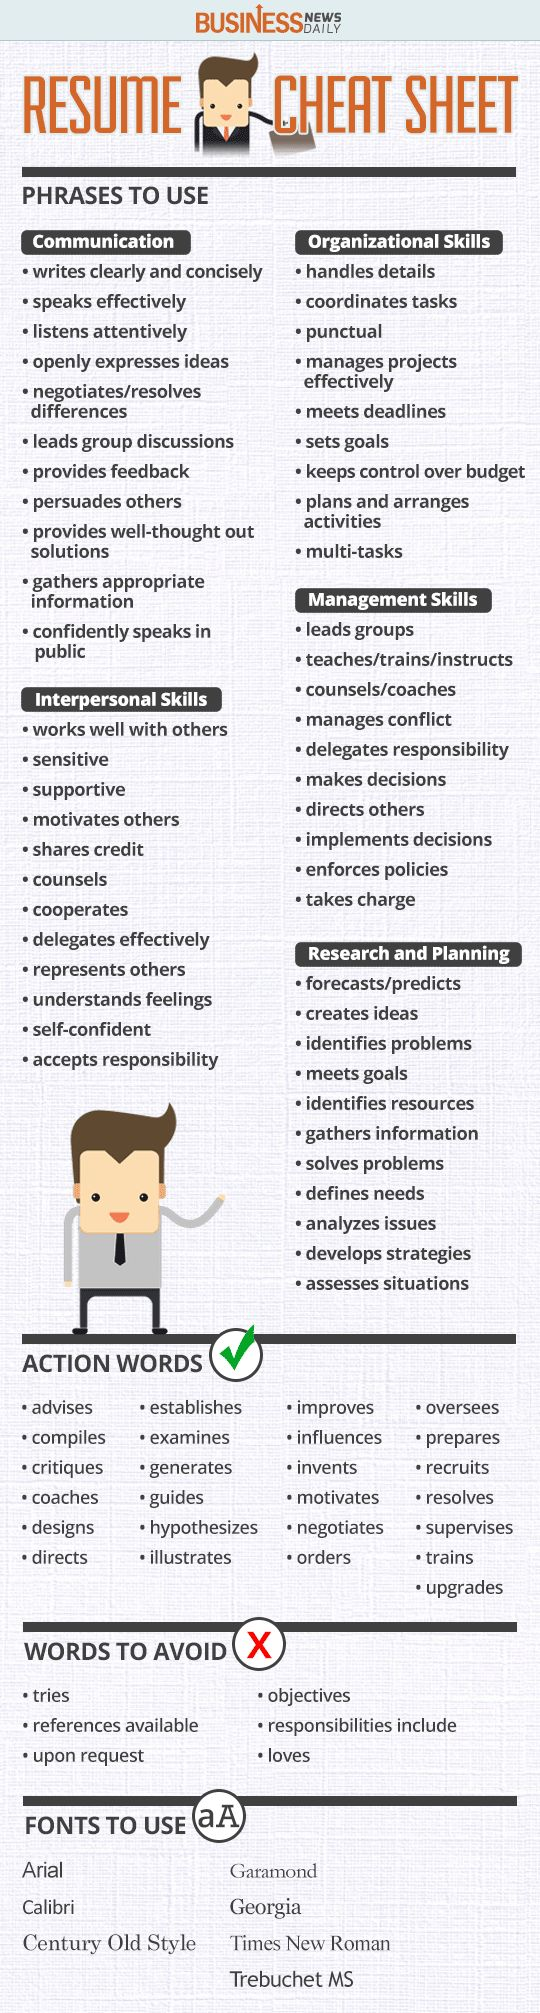 Opposenewapstandardsus  Unique  Ideas About Resume On Pinterest  Cv Format Resume  With Goodlooking Resume Cheat Sheet Infographic Andrews Almost Done With A Complete Unit On Employment Which With Alluring Cio Resume Examples Also First Resume Sample In Addition Pharmacy Student Resume And Good Resume Adjectives As Well As It Auditor Resume Additionally Marketing Executive Resume From Pinterestcom With Opposenewapstandardsus  Goodlooking  Ideas About Resume On Pinterest  Cv Format Resume  With Alluring Resume Cheat Sheet Infographic Andrews Almost Done With A Complete Unit On Employment Which And Unique Cio Resume Examples Also First Resume Sample In Addition Pharmacy Student Resume From Pinterestcom